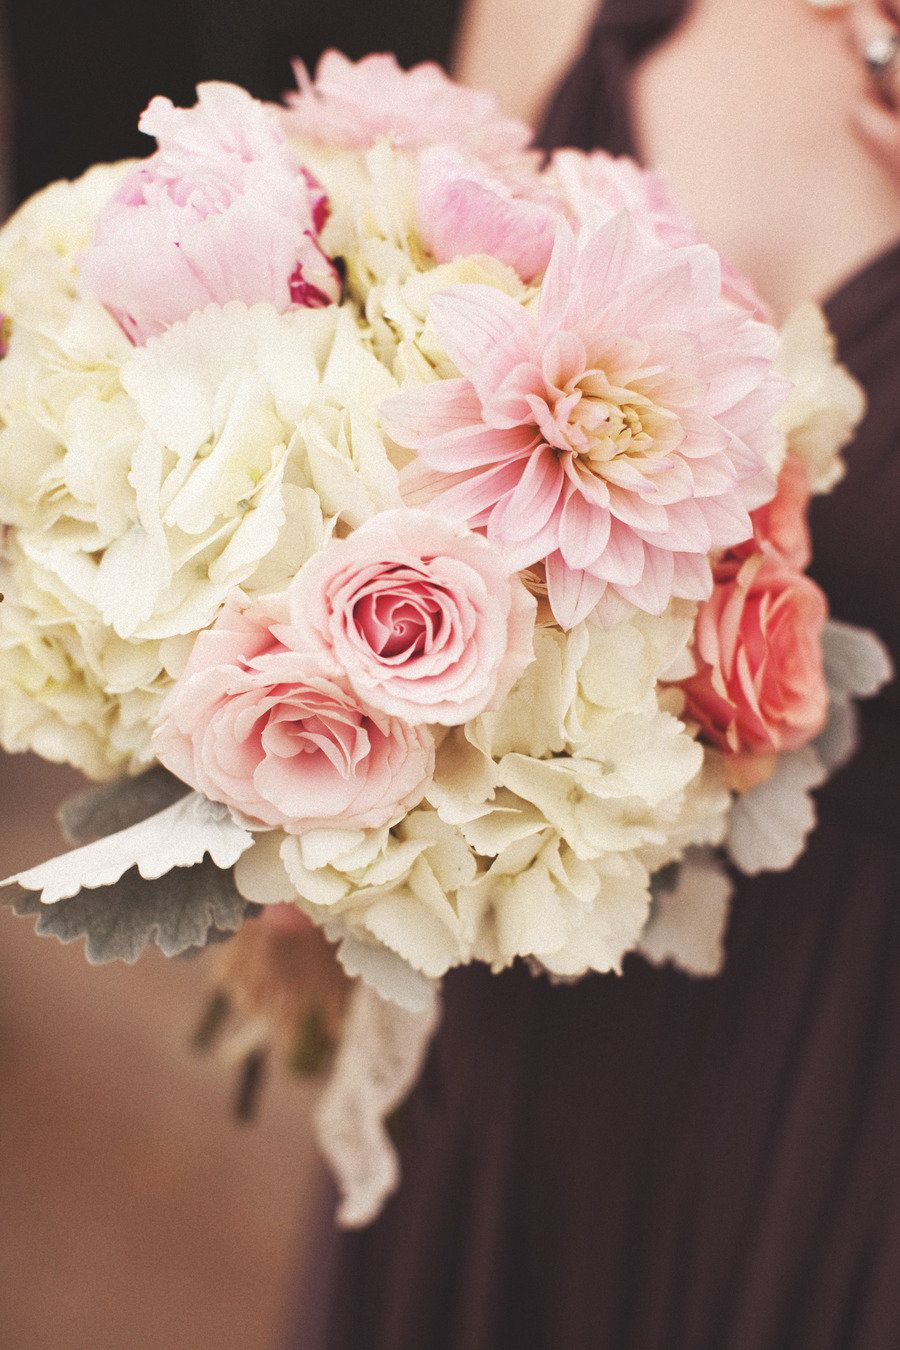 Nice and simple - base of hydrangea with roses and dahlias.